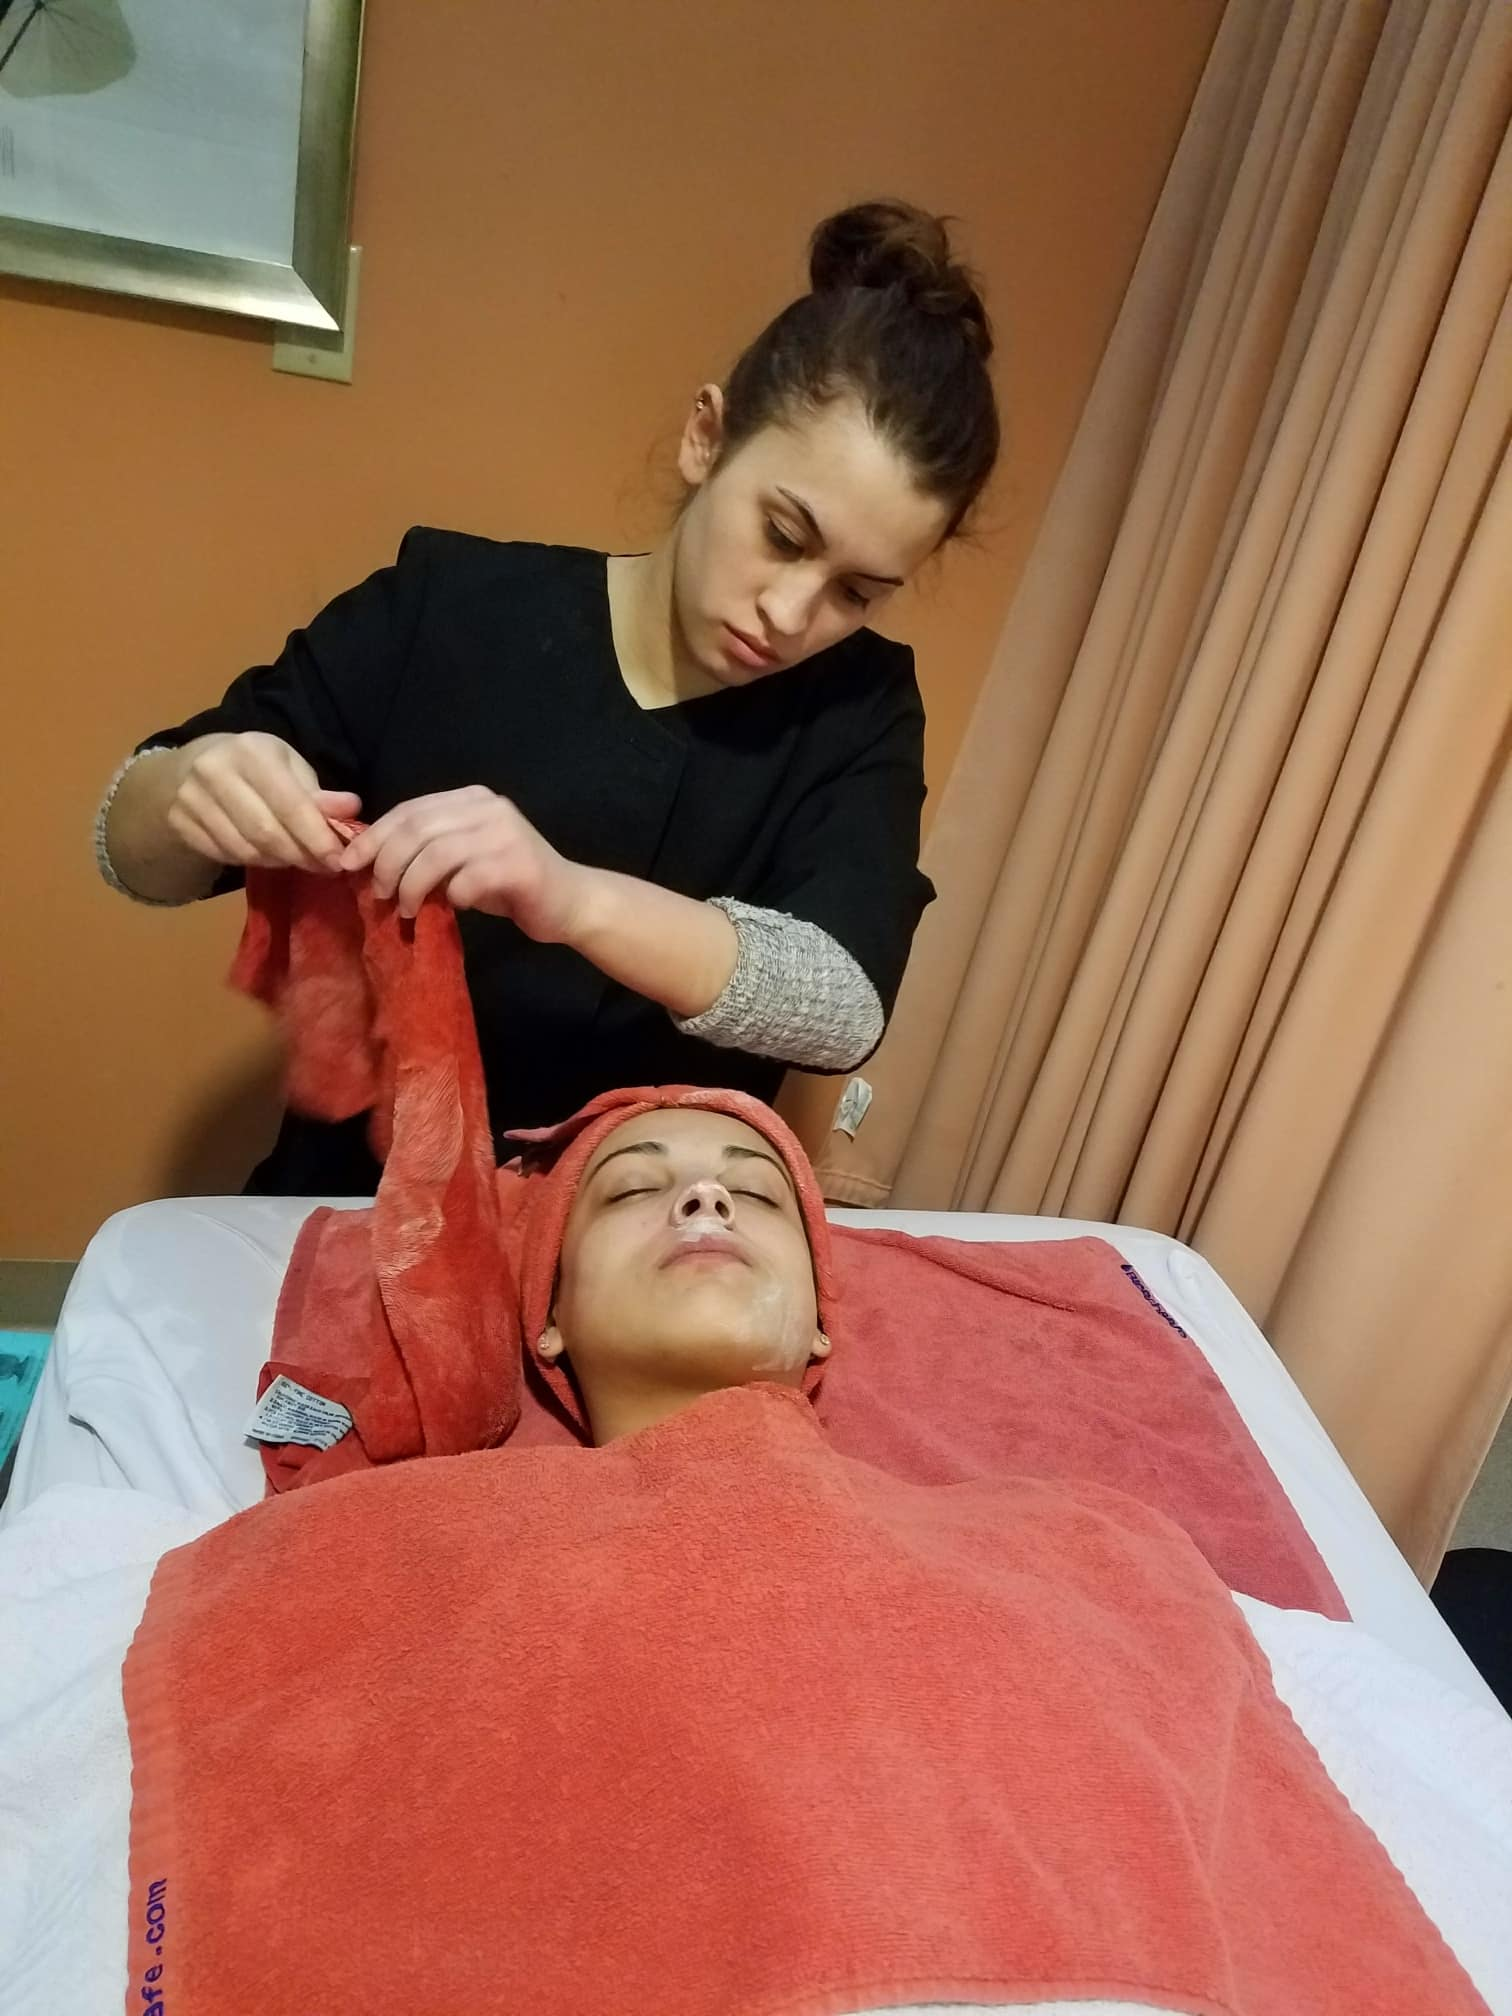 MPTC Cosmetology Student performing a facial